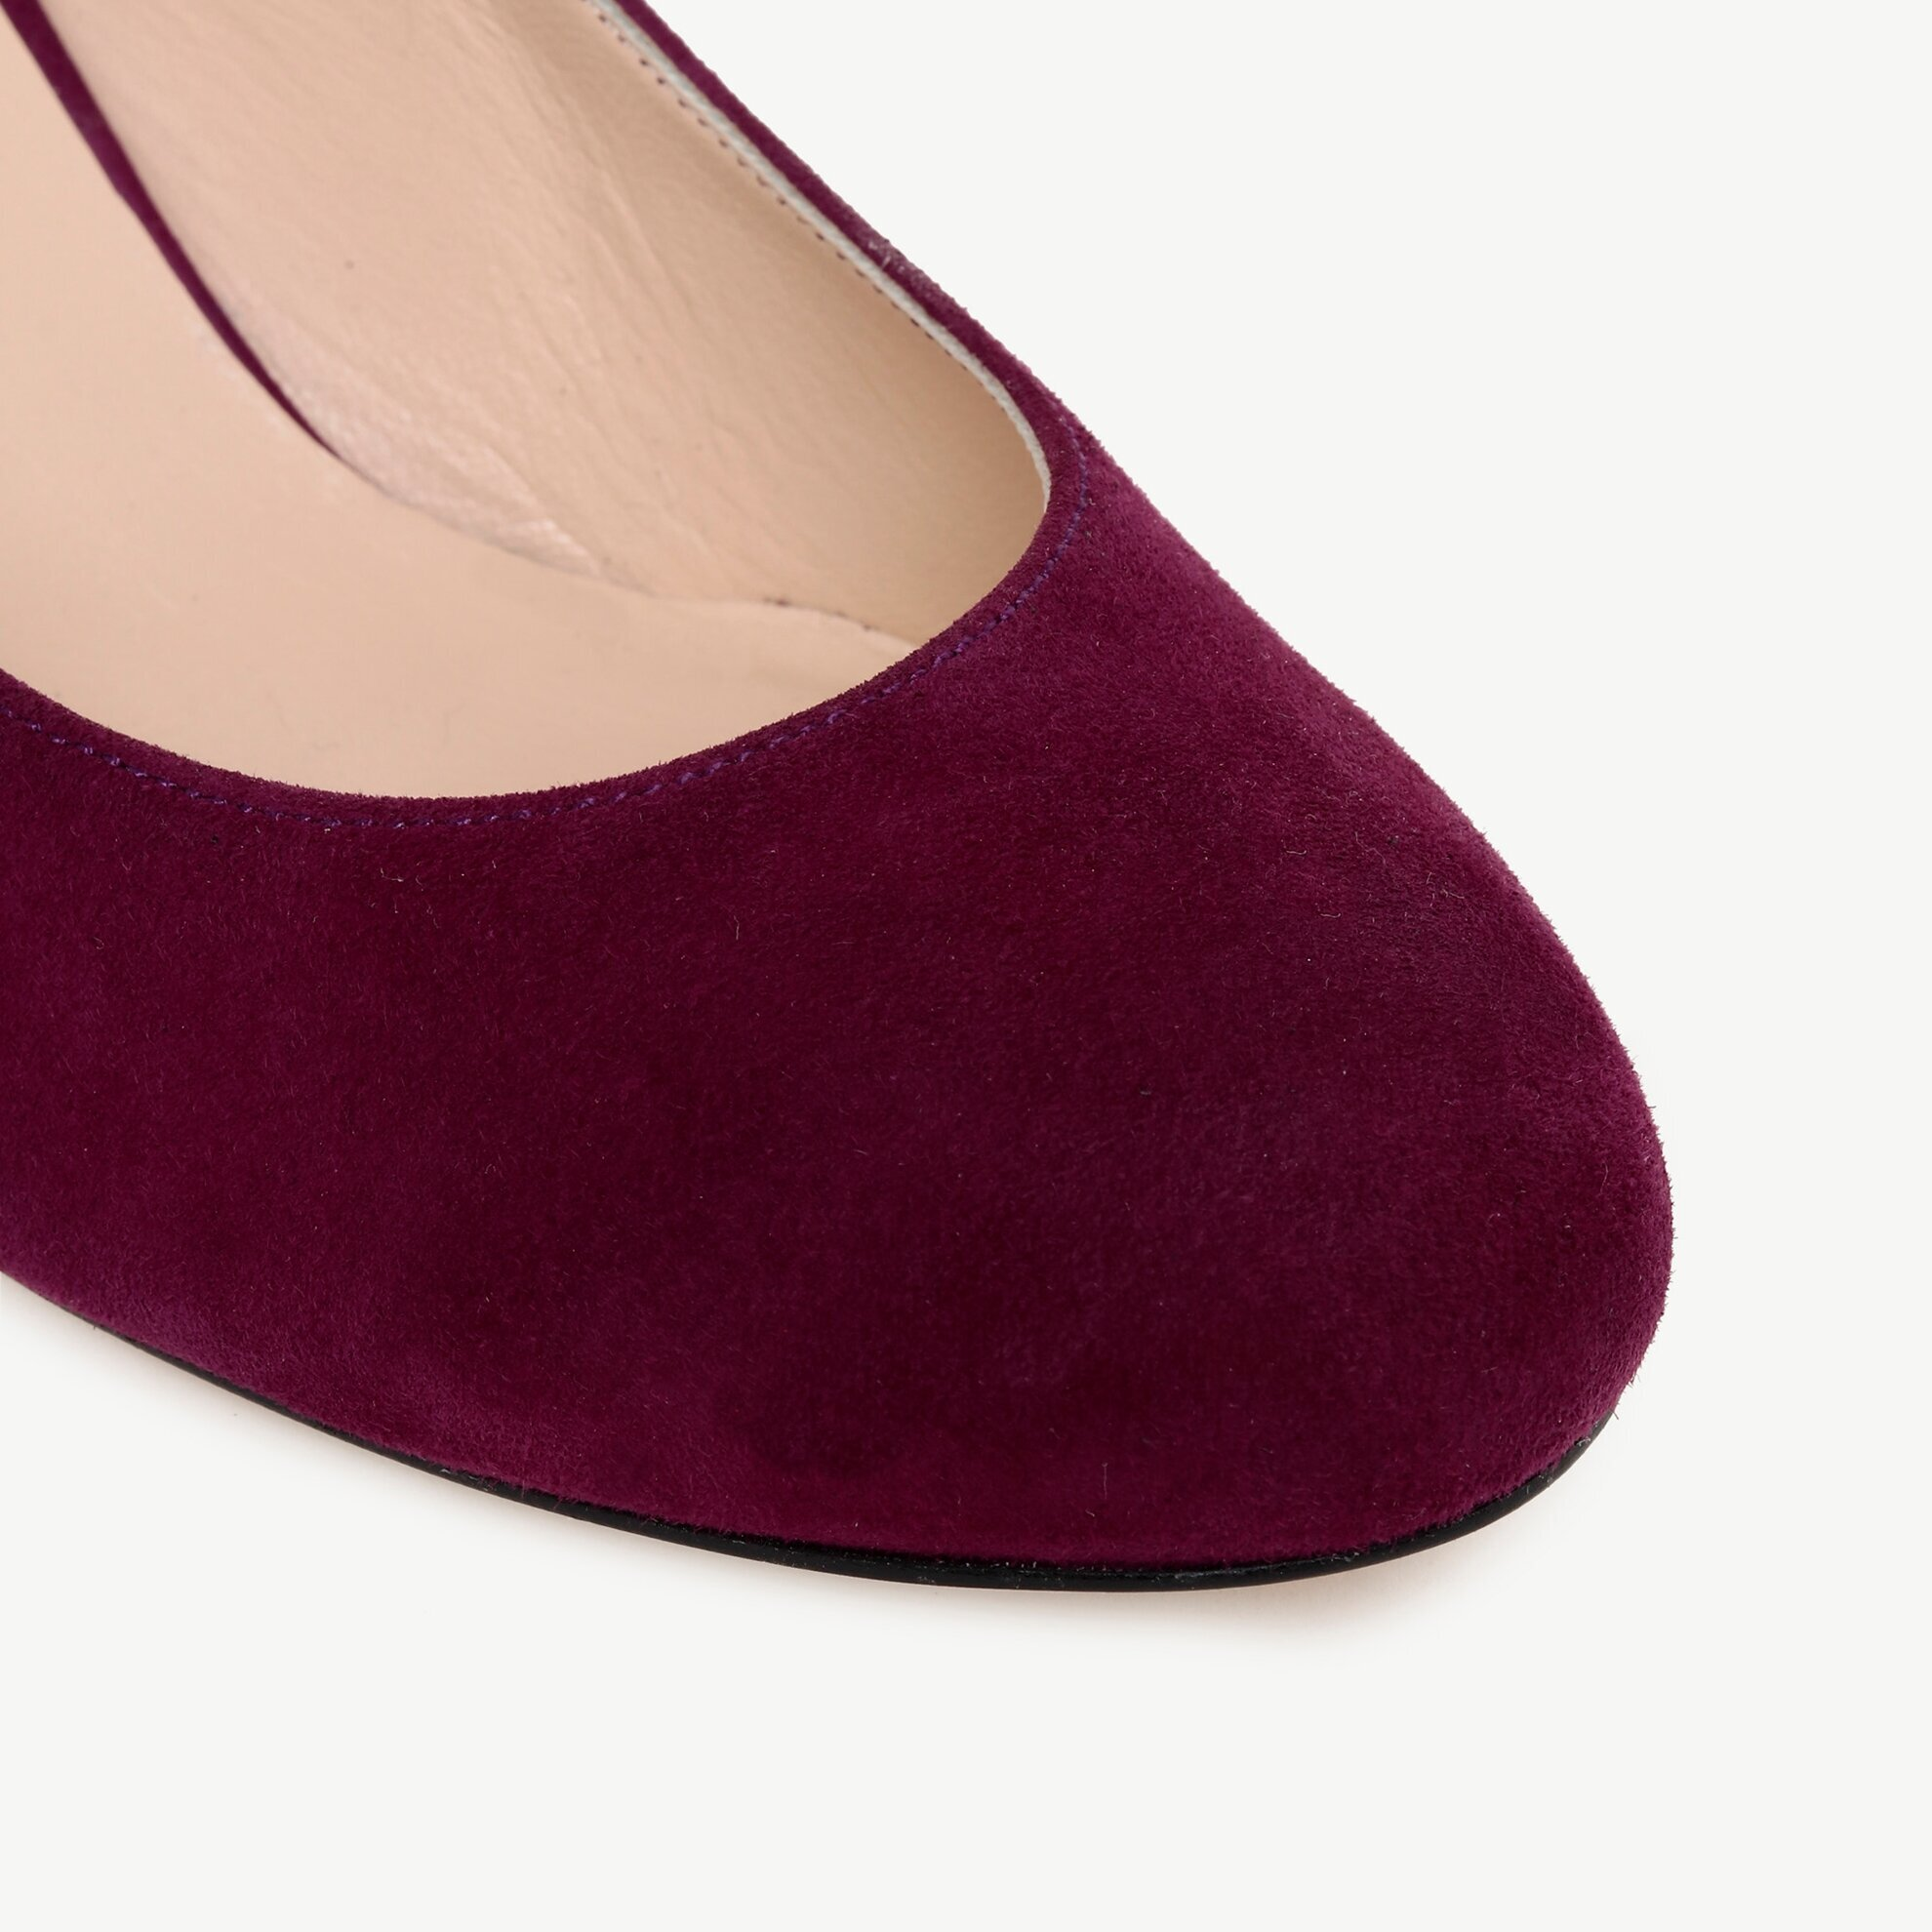 Suede High Heel Shoe